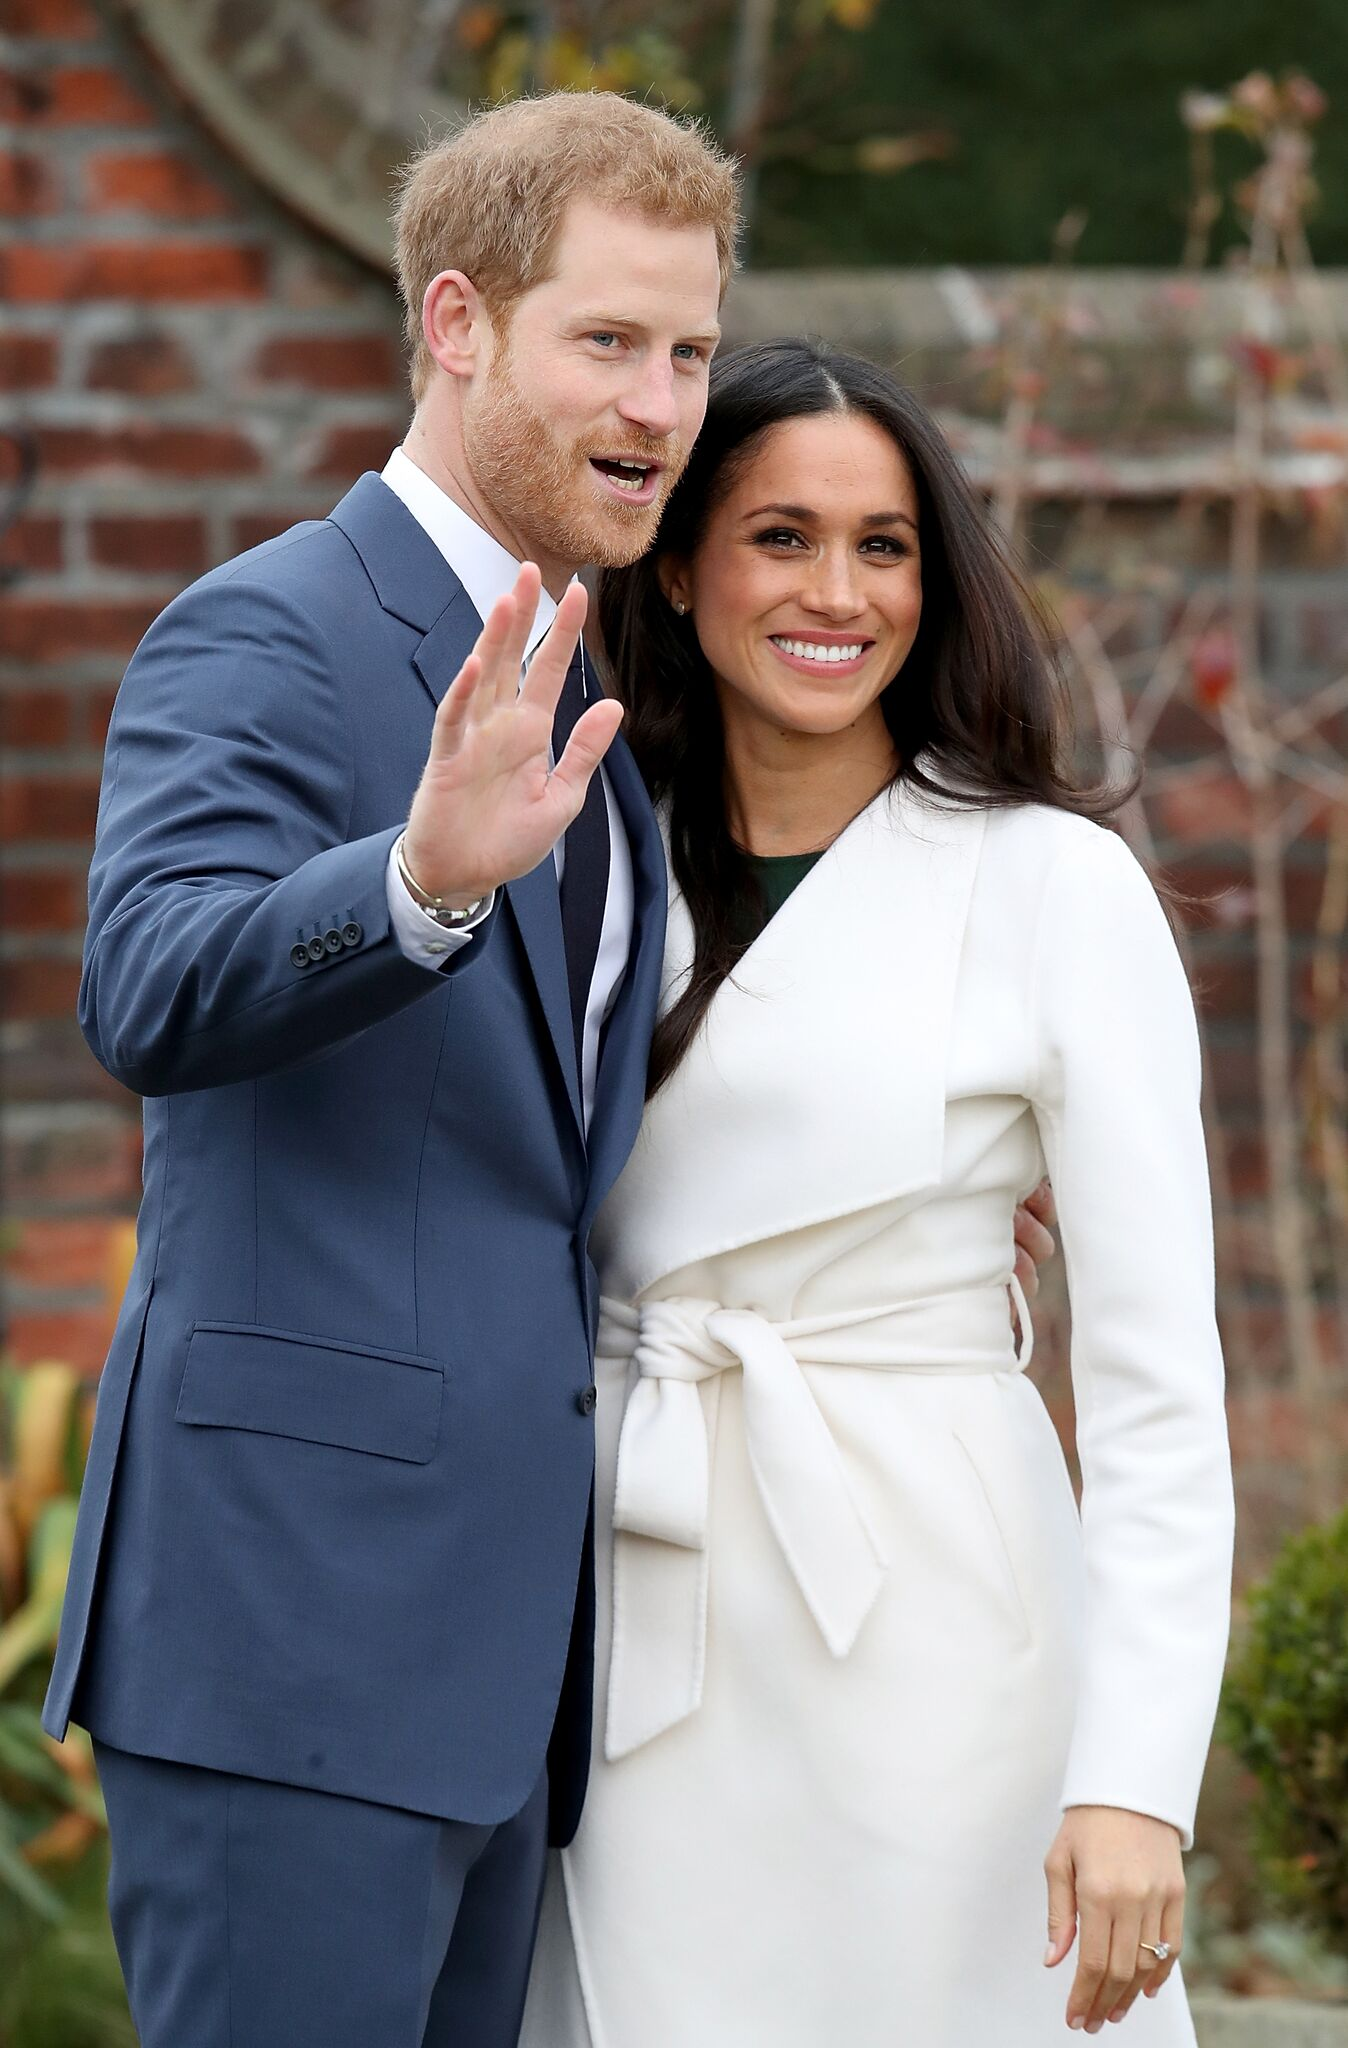 Prince Harry and actress Meghan Markle during an official photocall to announce their engagement at The Sunken Gardens at Kensington Palace | Getty Images / Global Images Ukraine